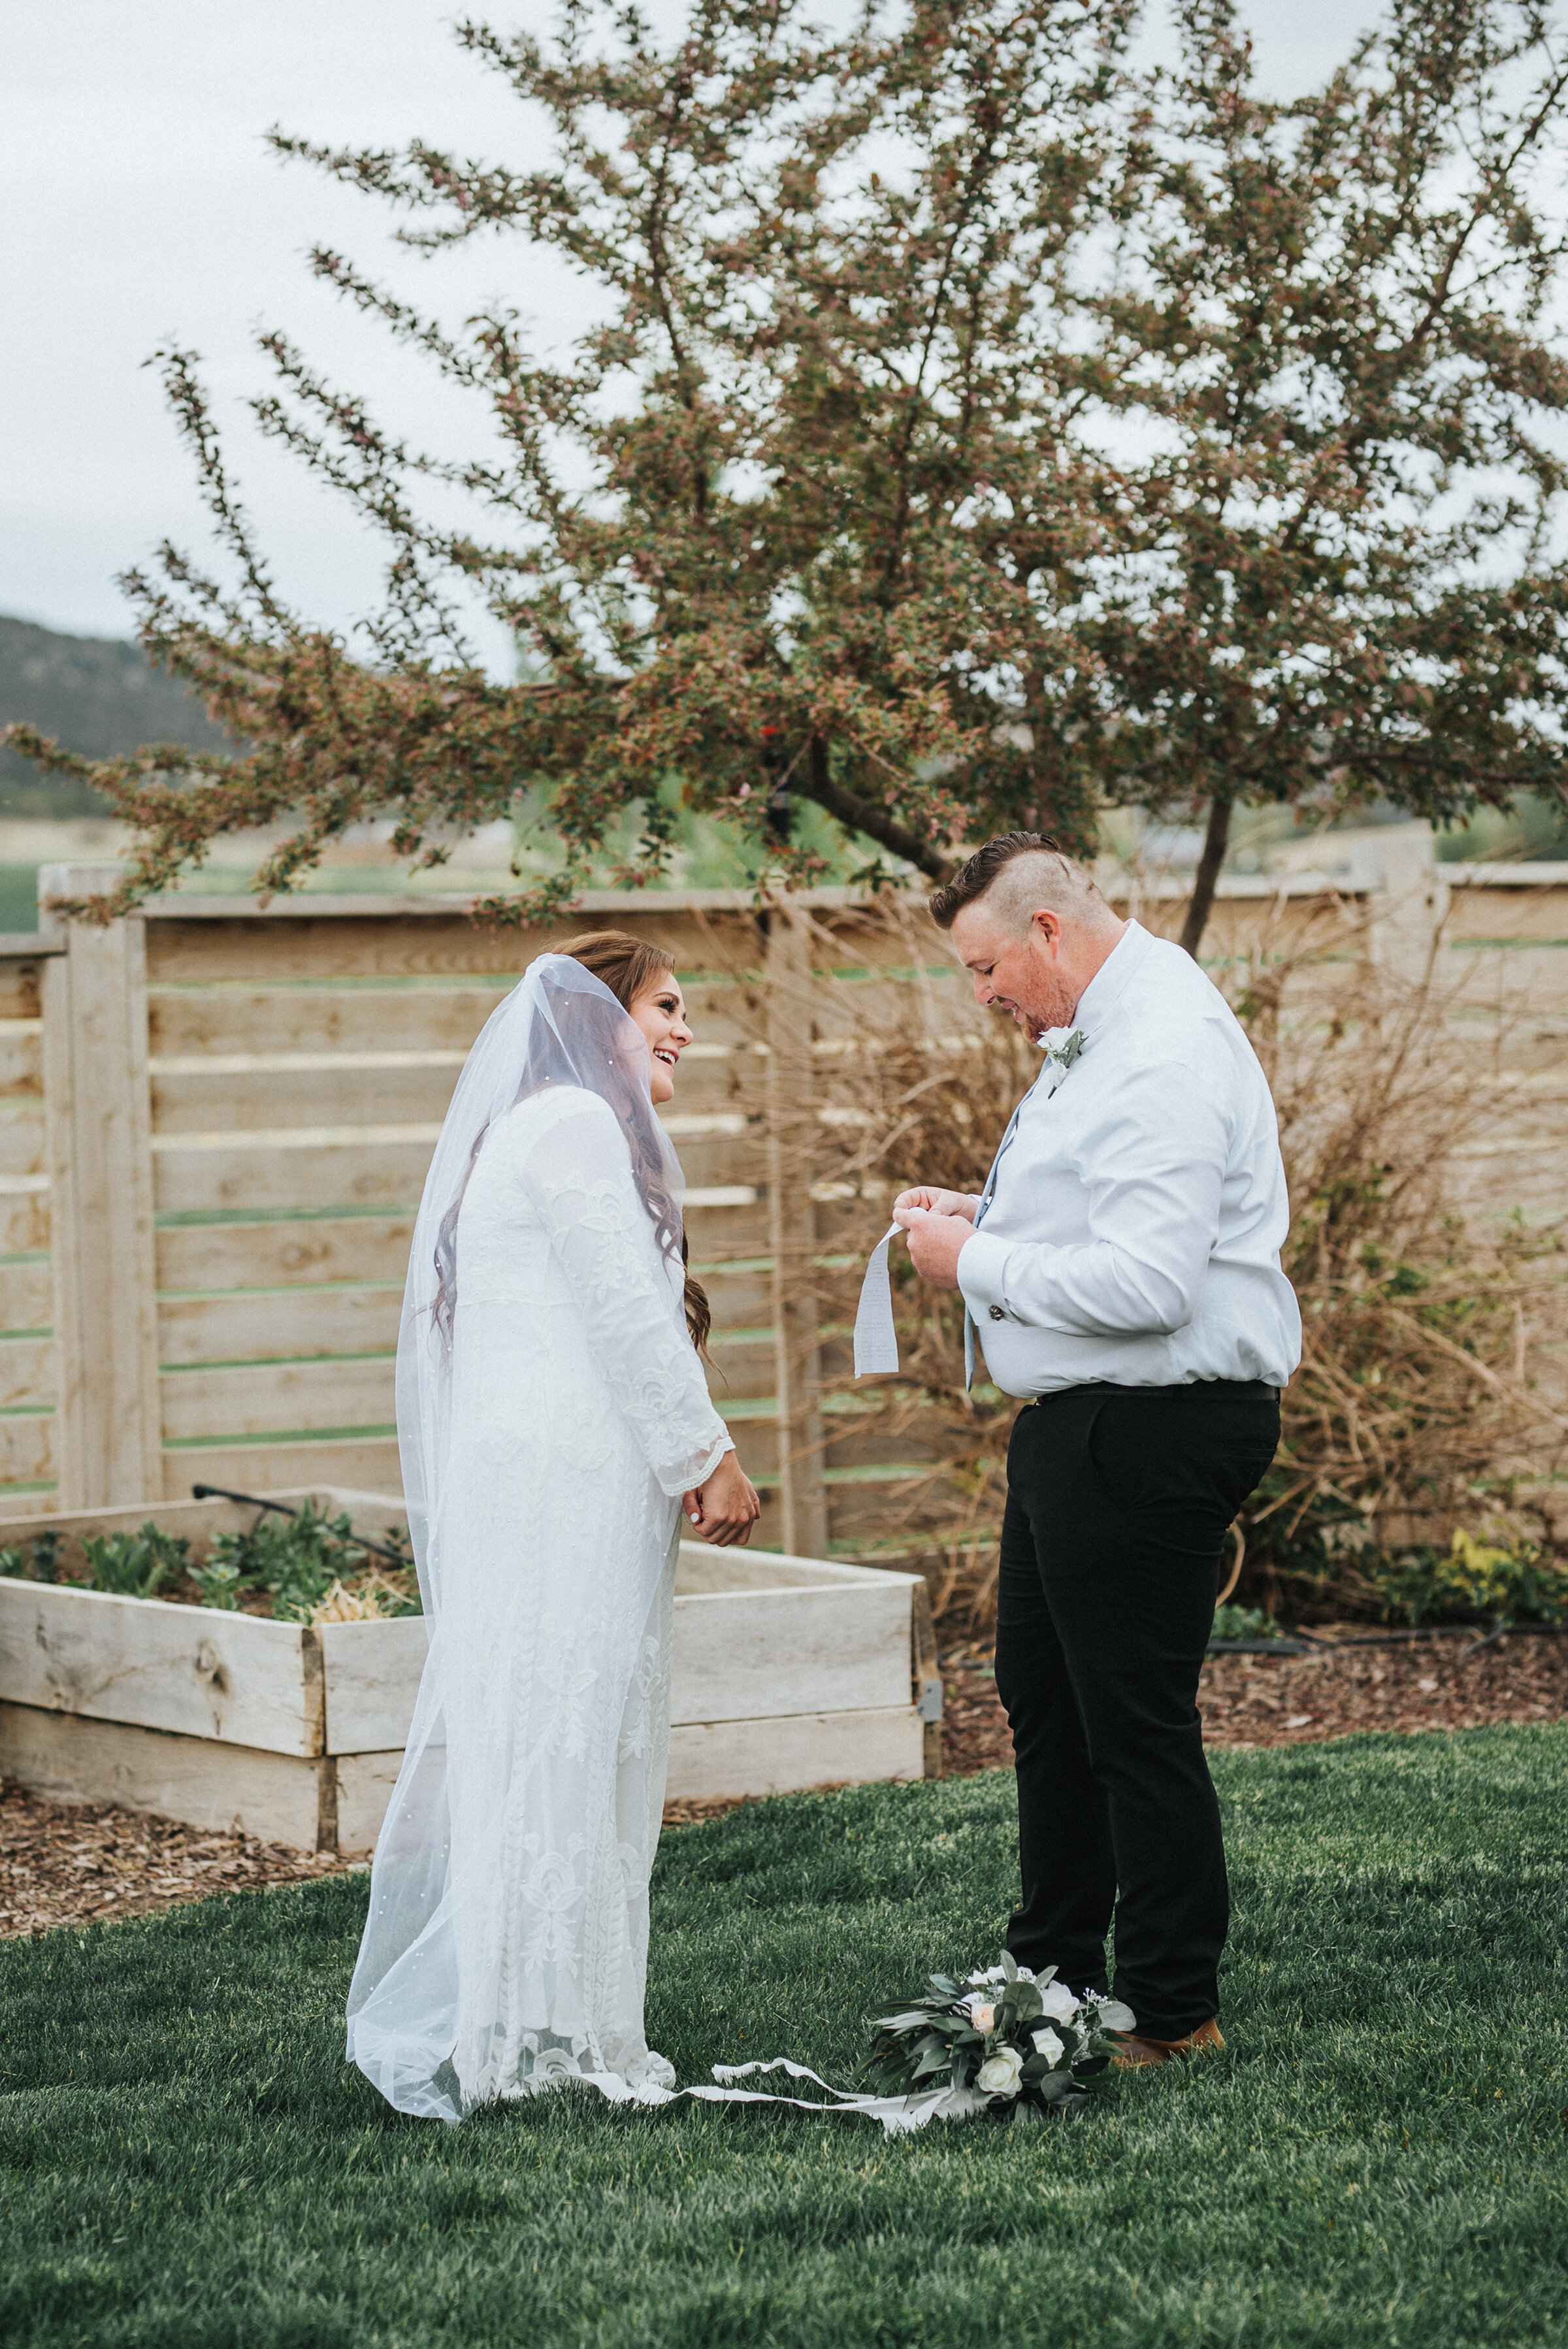 Emotional and tender vow exchange between the bride and groom outside of their Airbnb during their wedding ceremony in Ephraim, Utah. Wedding day photoshoot in Ephraim Utah photography wedding outdoor location western inspired rustic Airbnb photo aesthetic #ephraimutah #utahphotography #weddingdayphotography #gettingmarried #rusticwedding #utahwedding #westernstyle #weddingphotoshoot